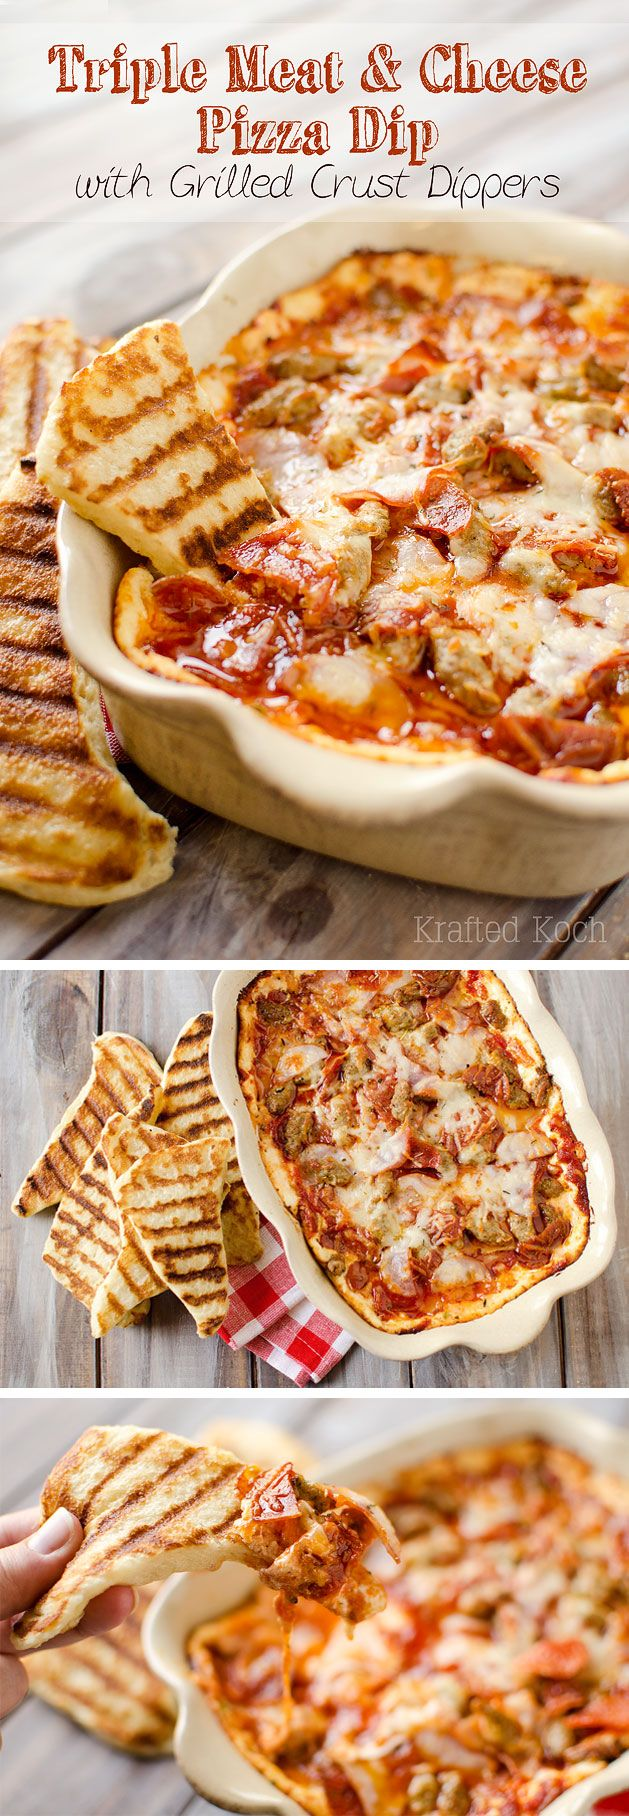 Triple Meat Cheese Pizza Dip With Grilled Crust Dippers Is An Amazingly Cheesy And Flavorful Appetizer Recipe That Will Be A H Recipes Food Appetizer Recipes